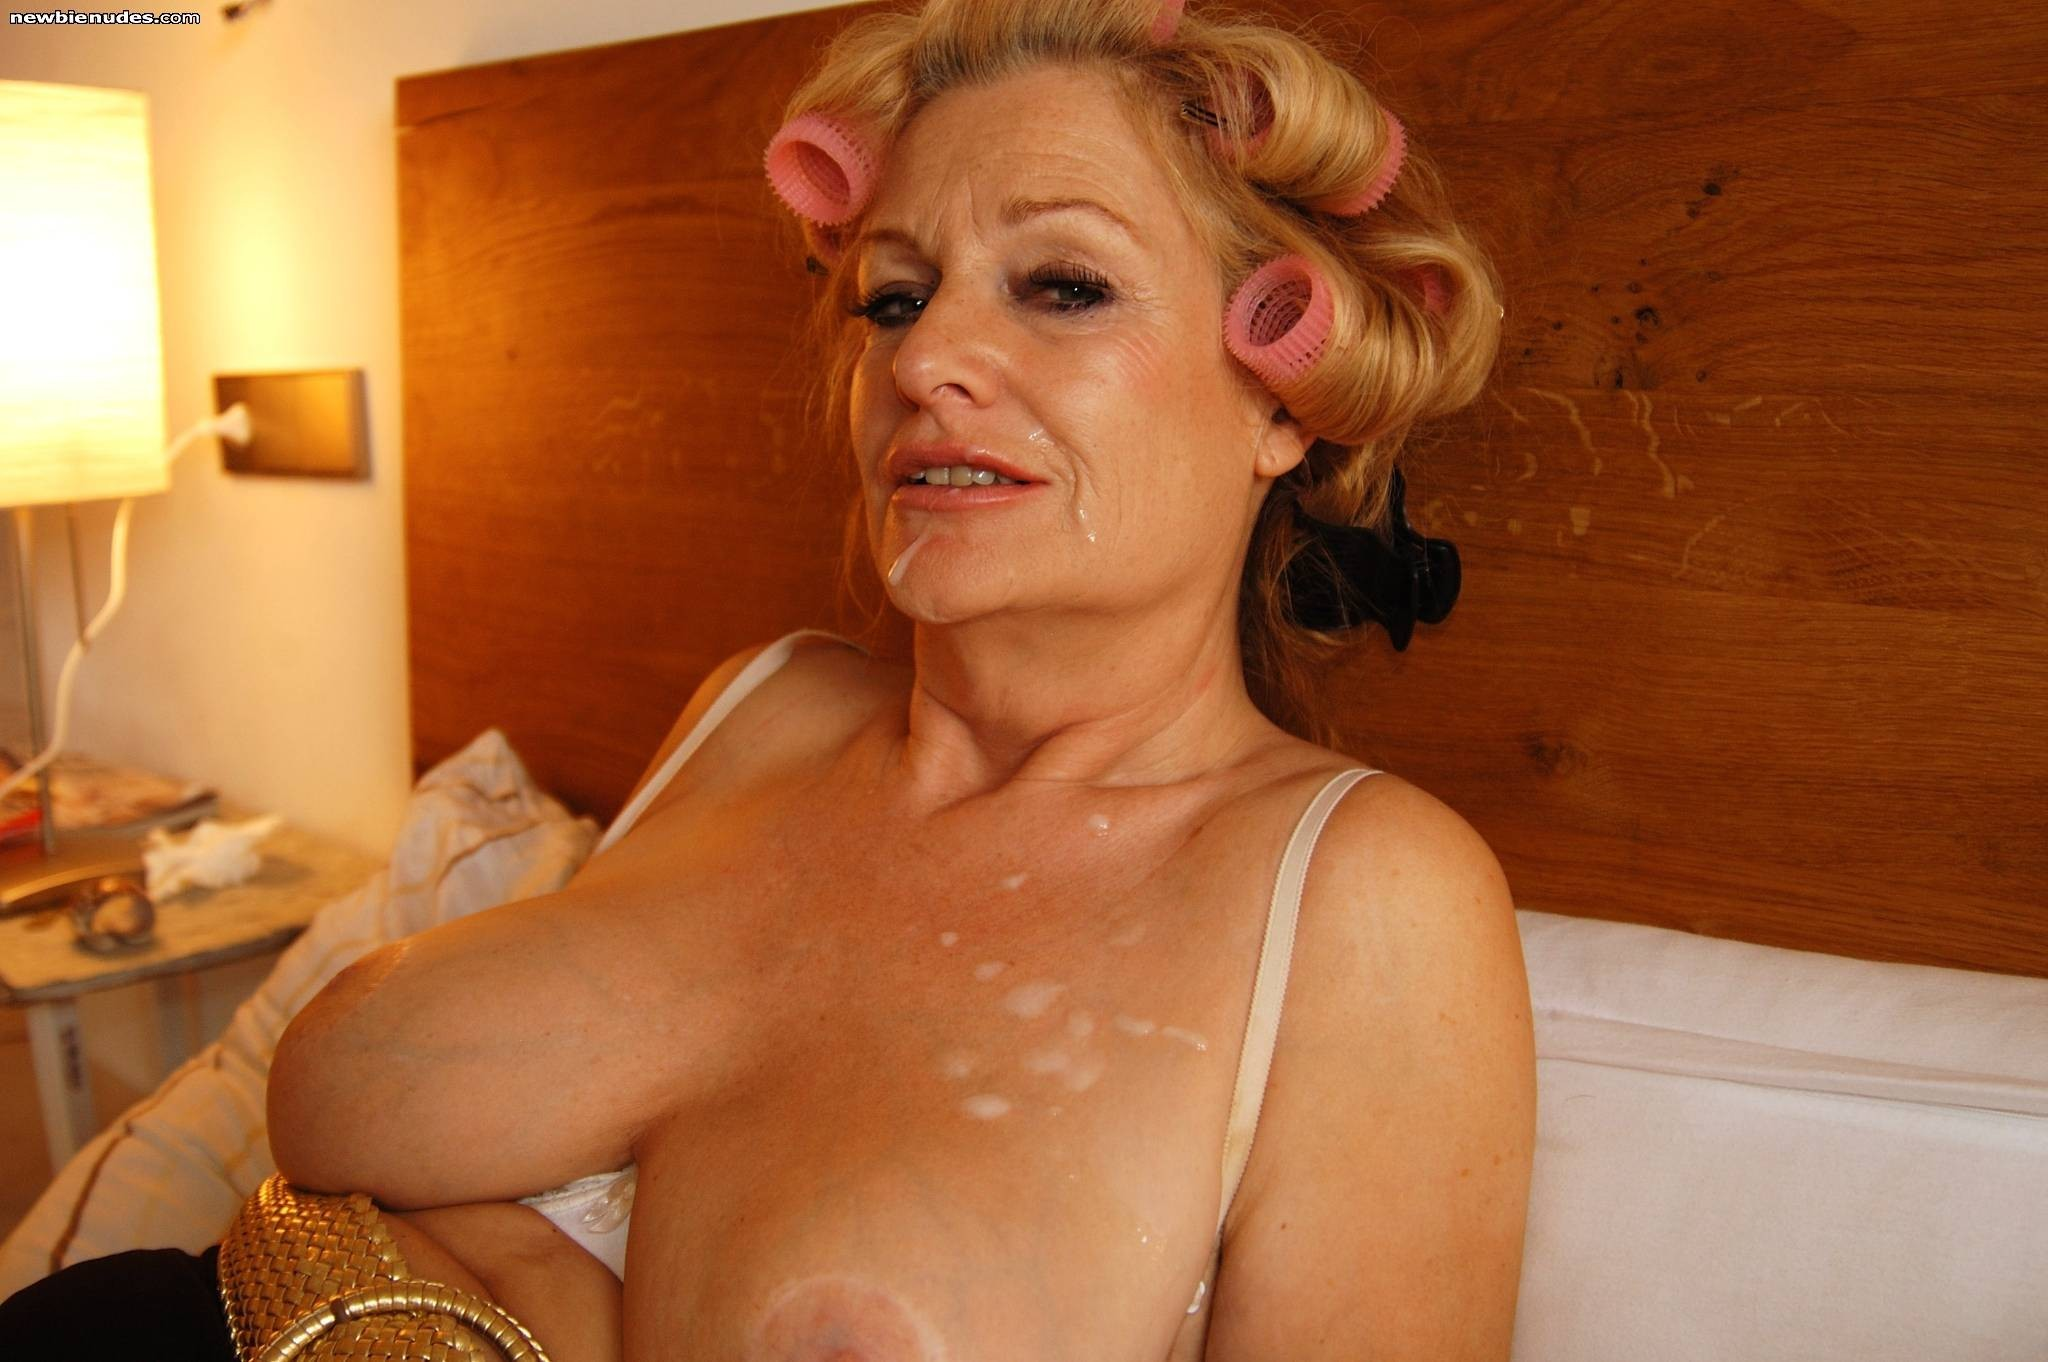 Lesbian - New Matures - Free Older